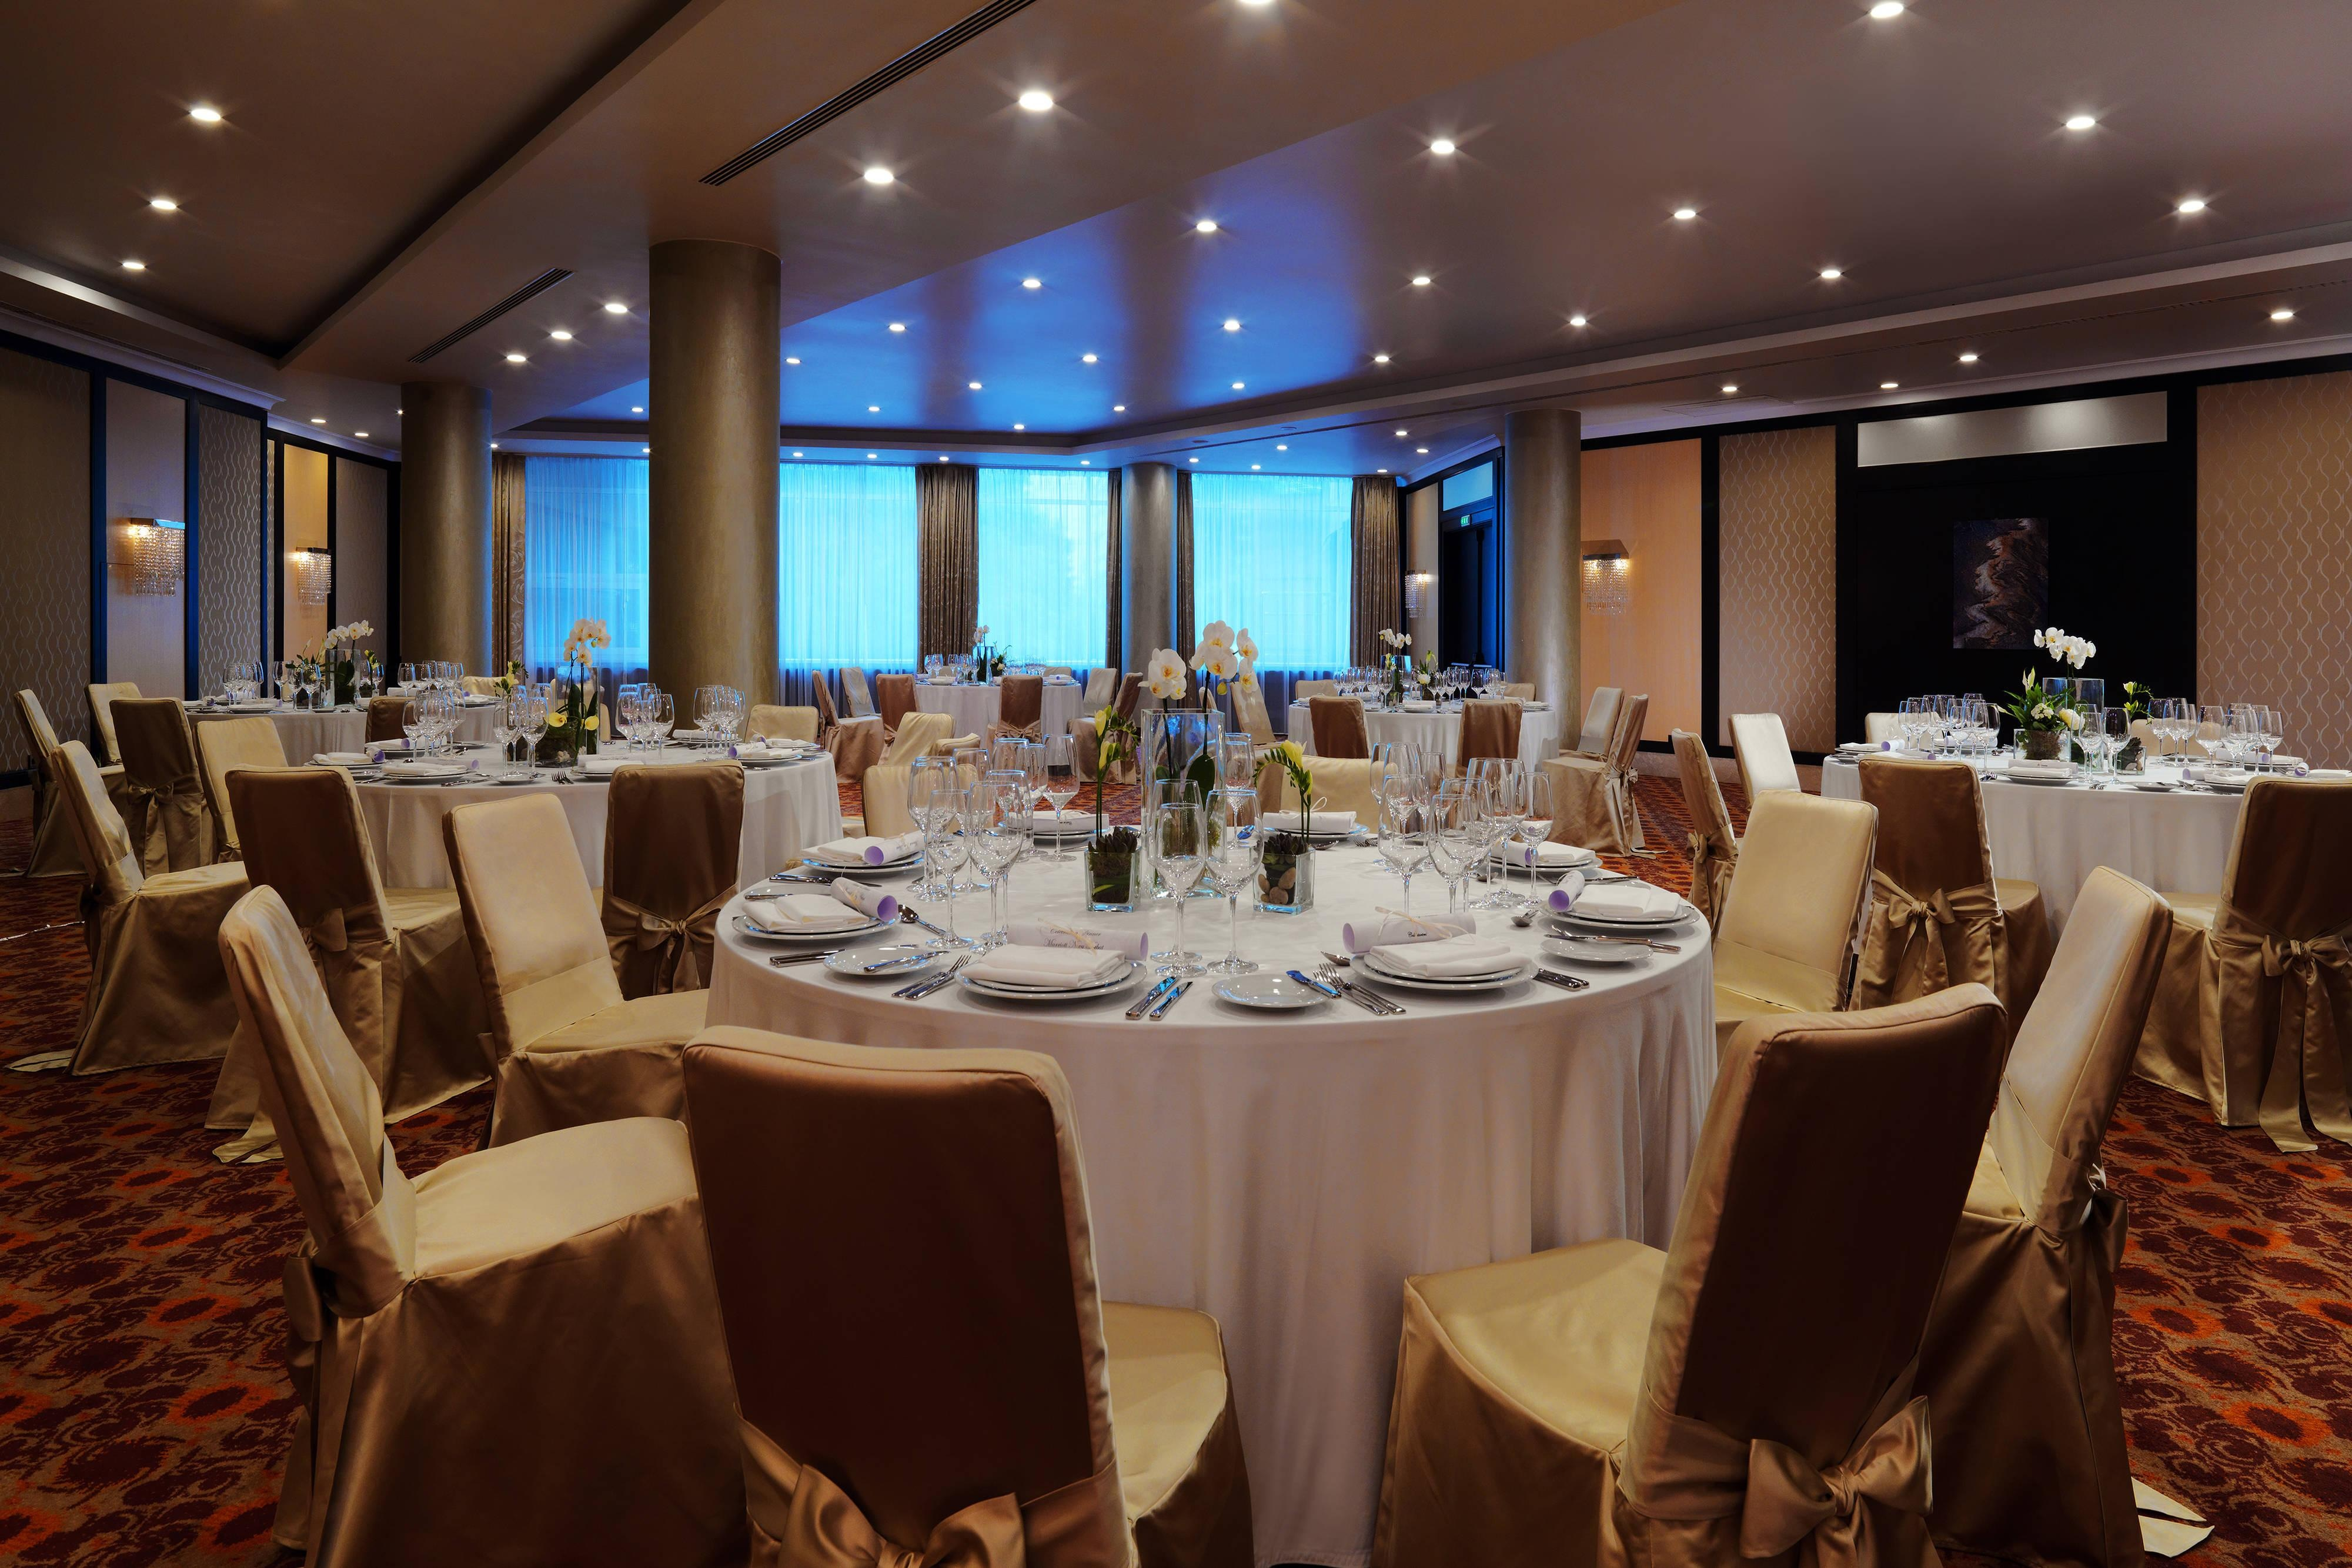 Moscow hotel meetings and events